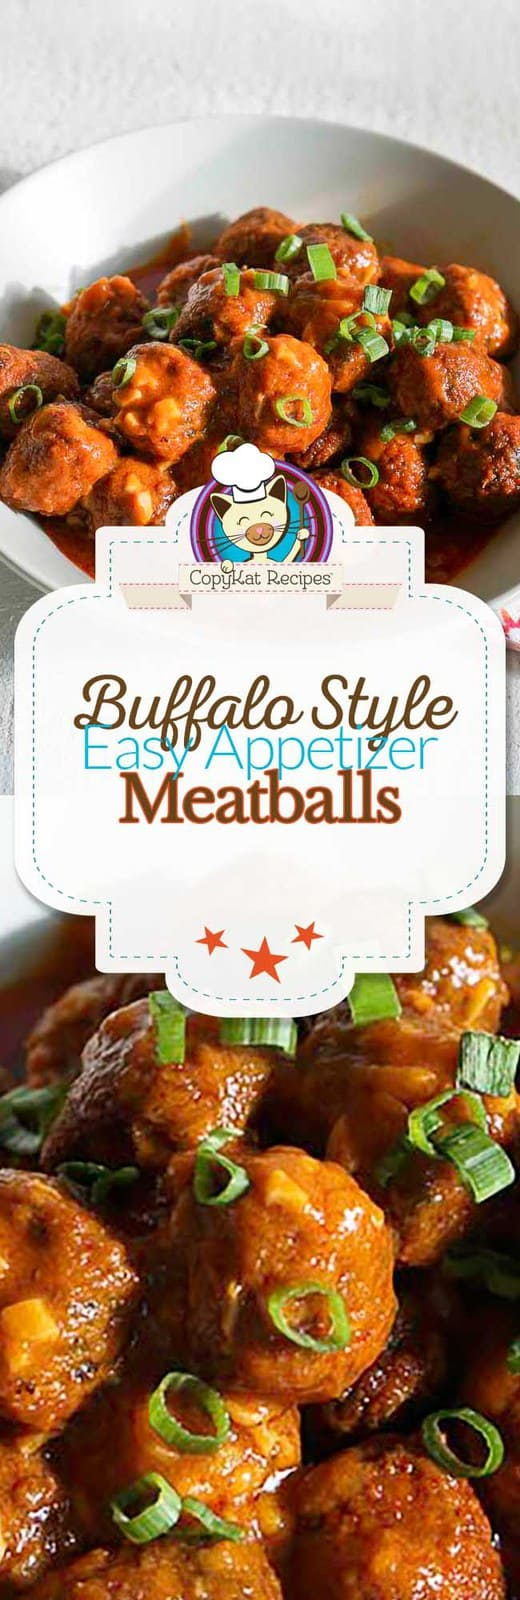 Enjoy these easy to prepare buffalo style meatballs, you will be amazed at the flavor.